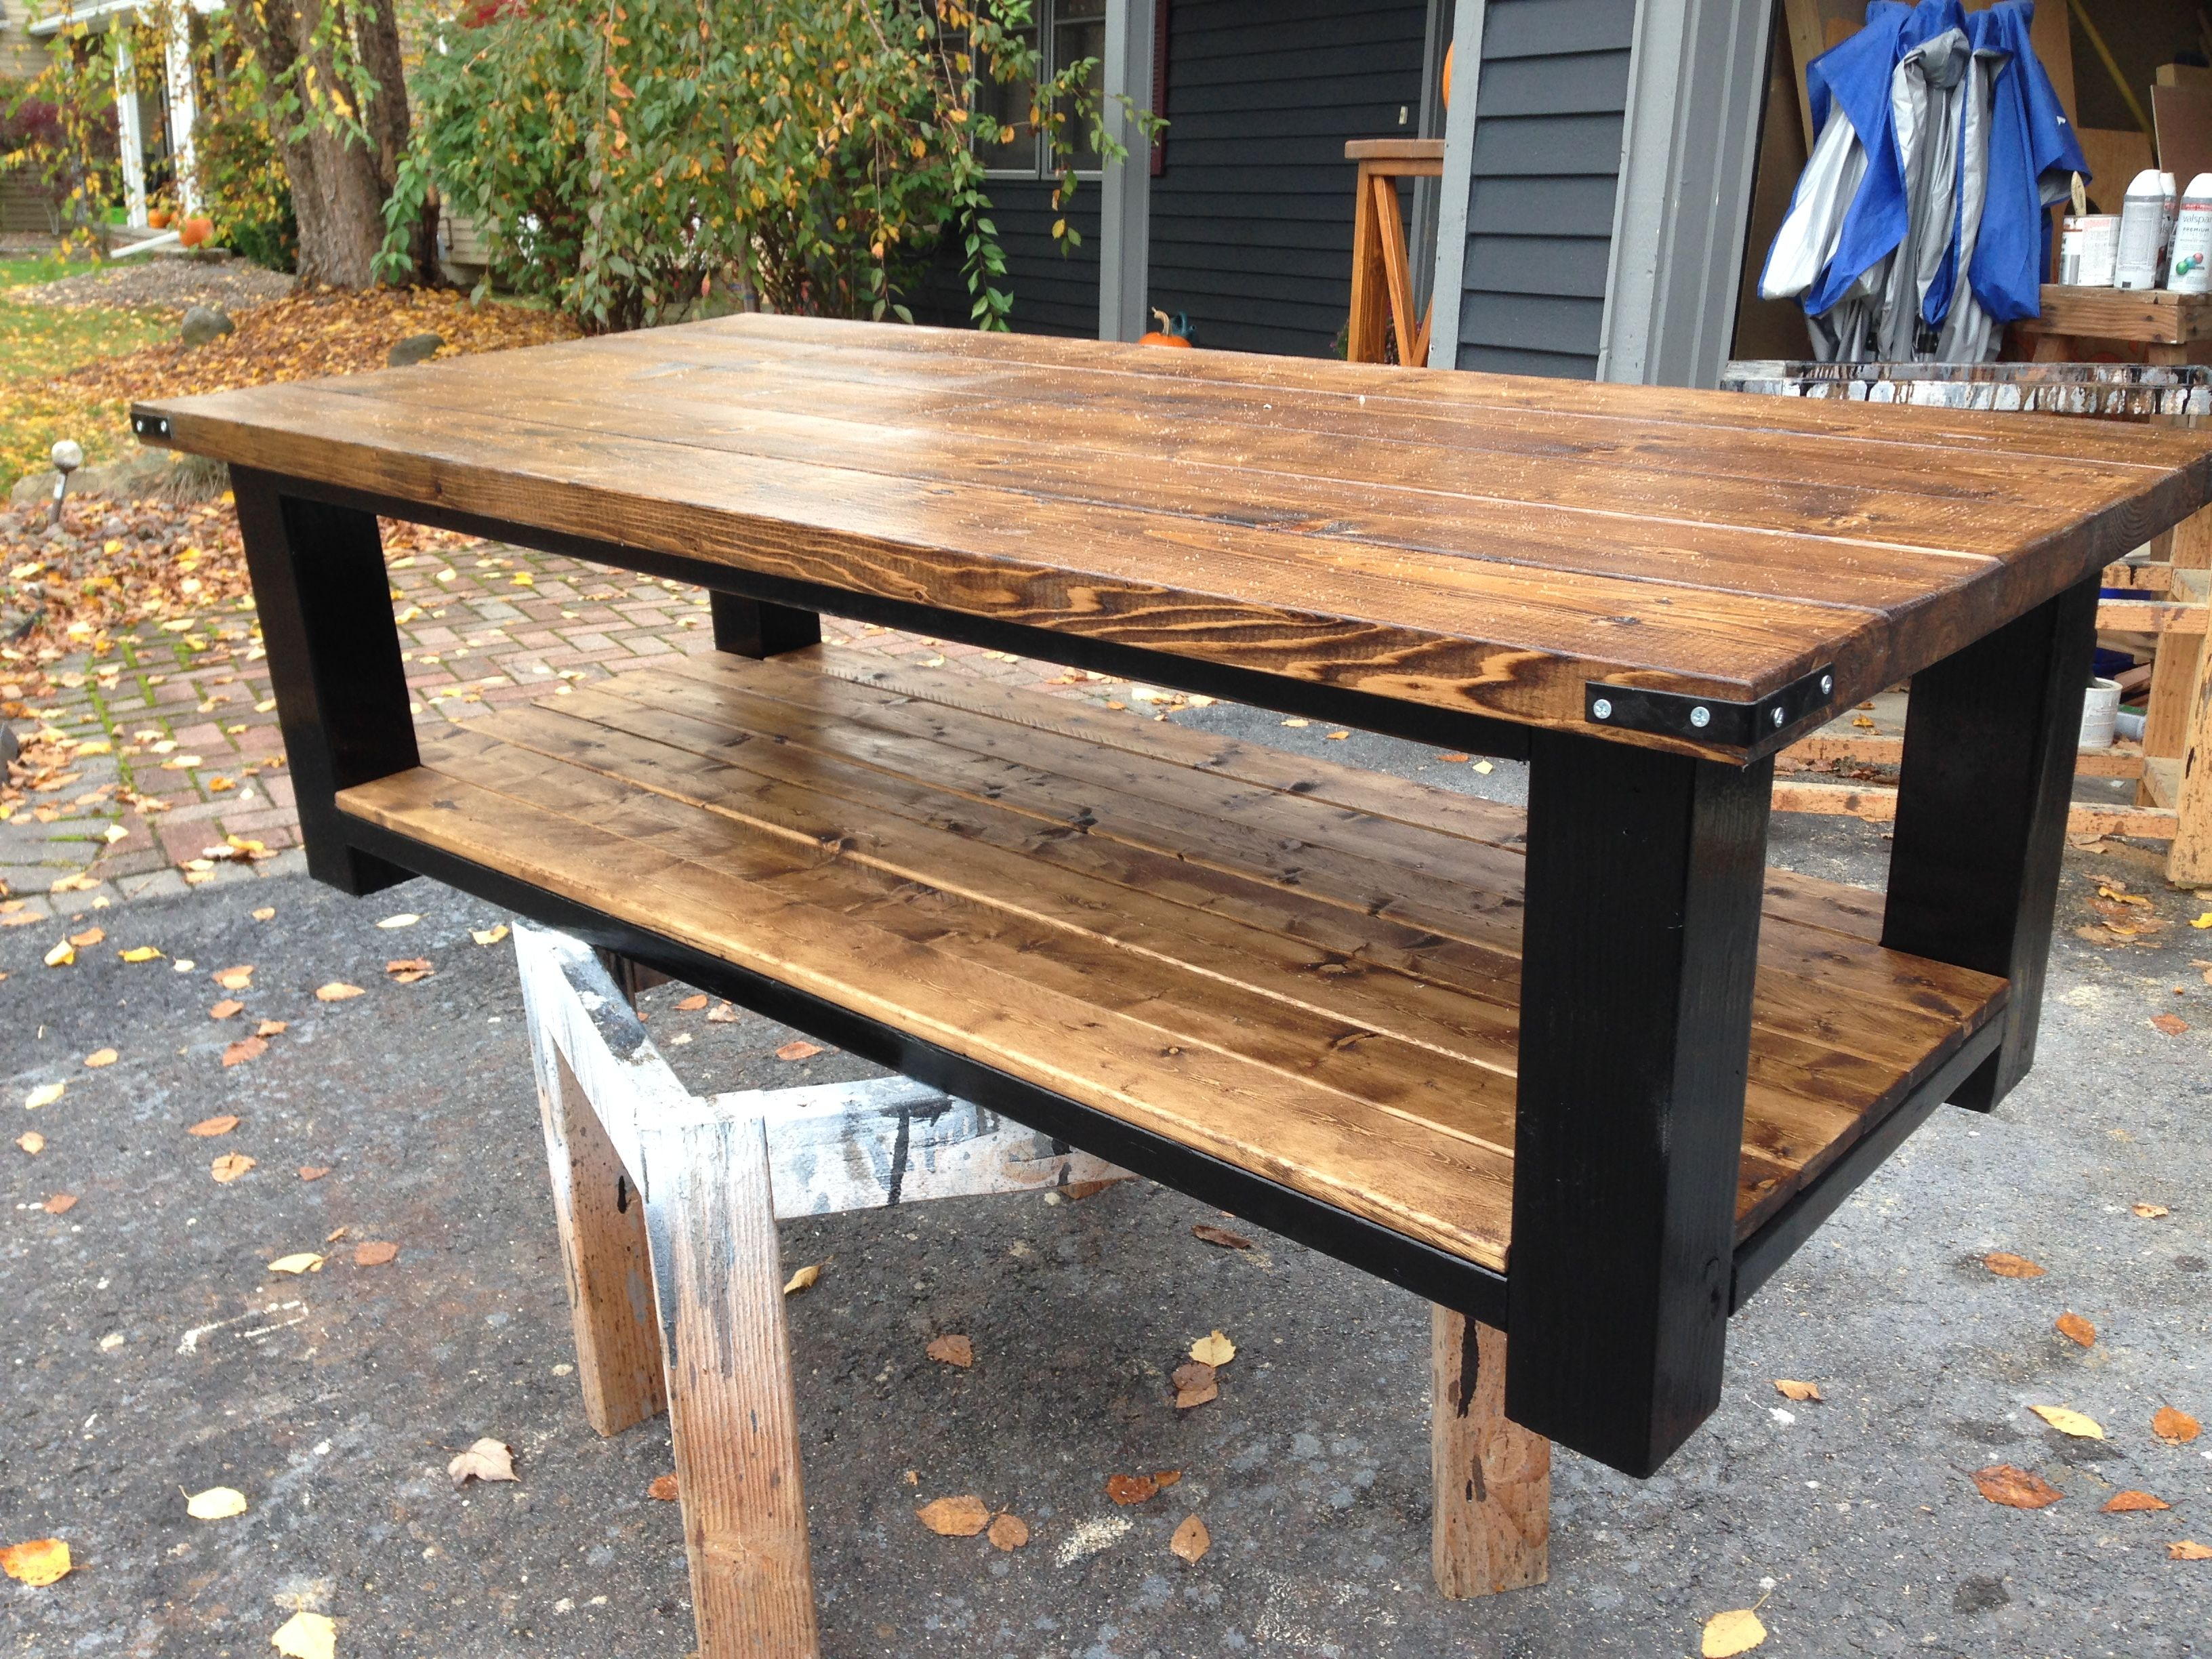 4x4 leg coffee table Coffee table wood